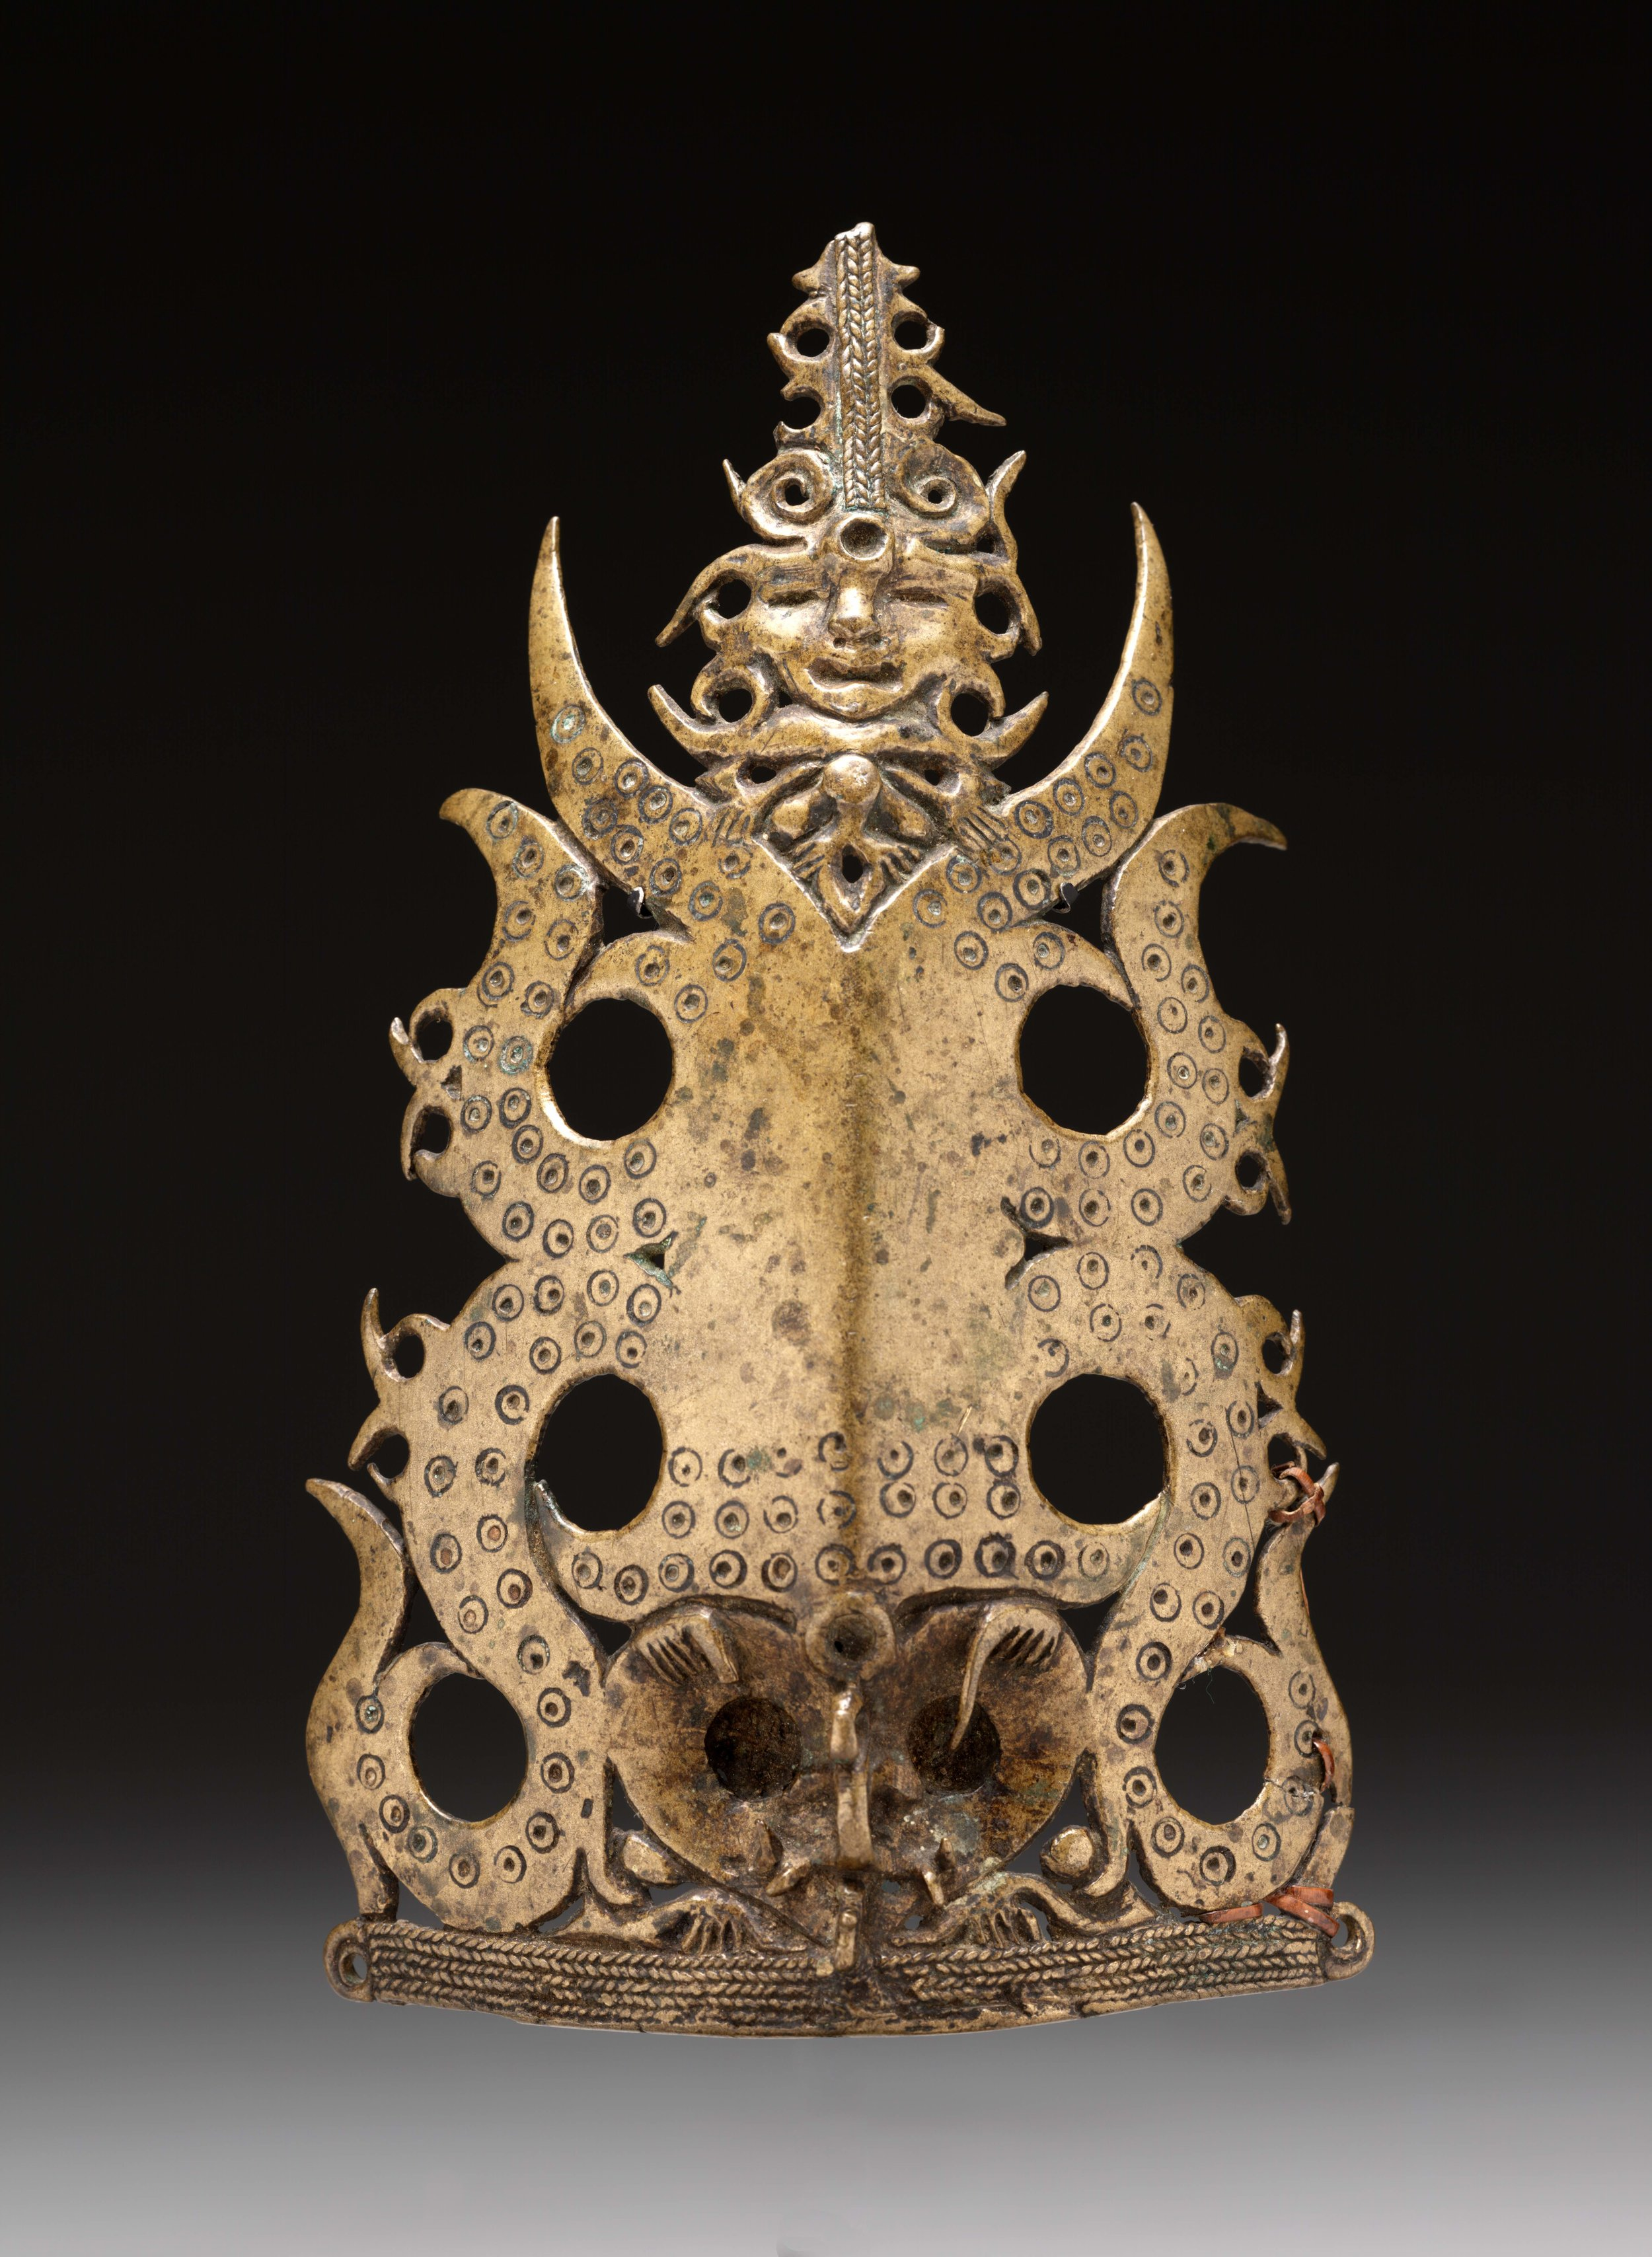 Warrior's Headdress Ornament, Frontal Figure | Tap Lavong Kayo | Borneo © Dallas Museum of Art | Texas, USA